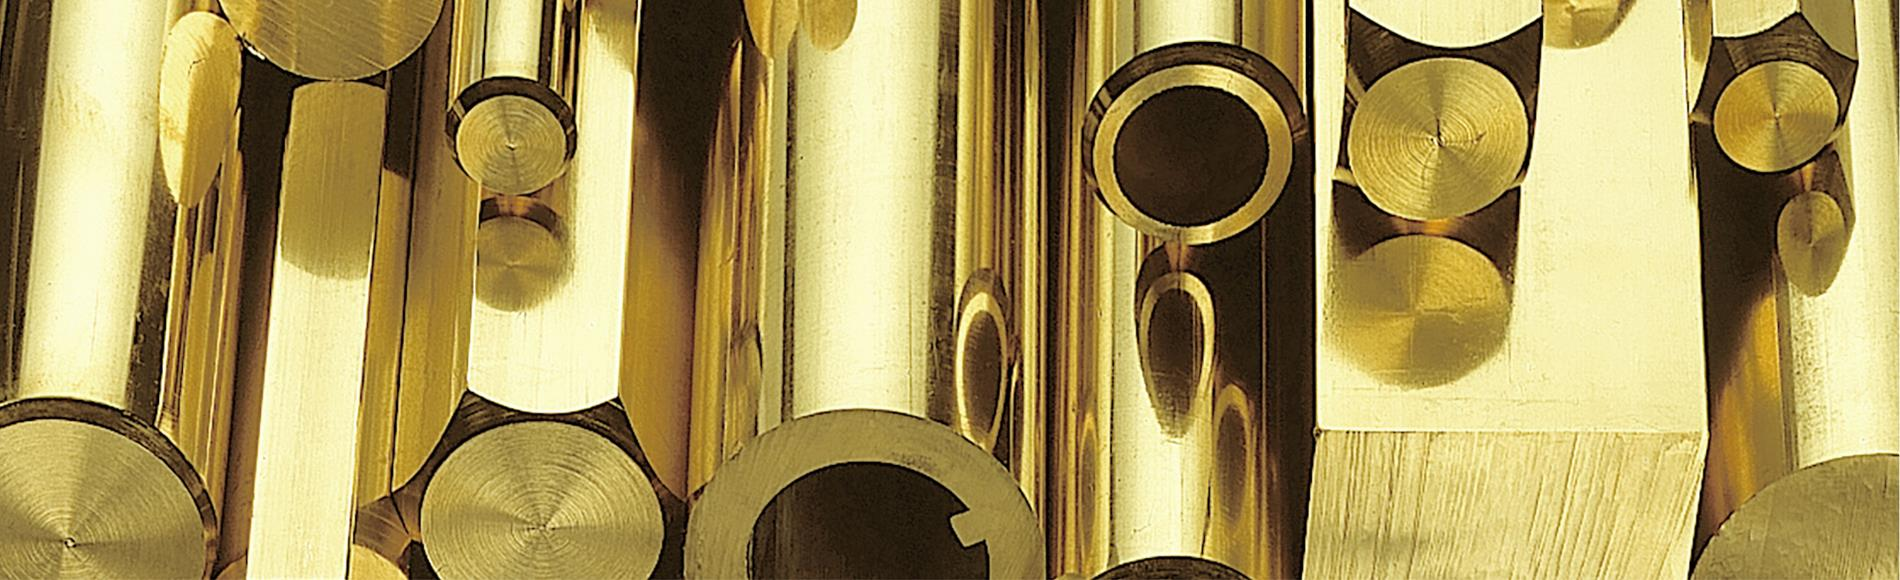 http://www.fitco.gr/userfiles/45aad4a2-7fba-4093-8a2a-a6de00bc5a0a/Brass-rods.jpg?quality=75&w=1900